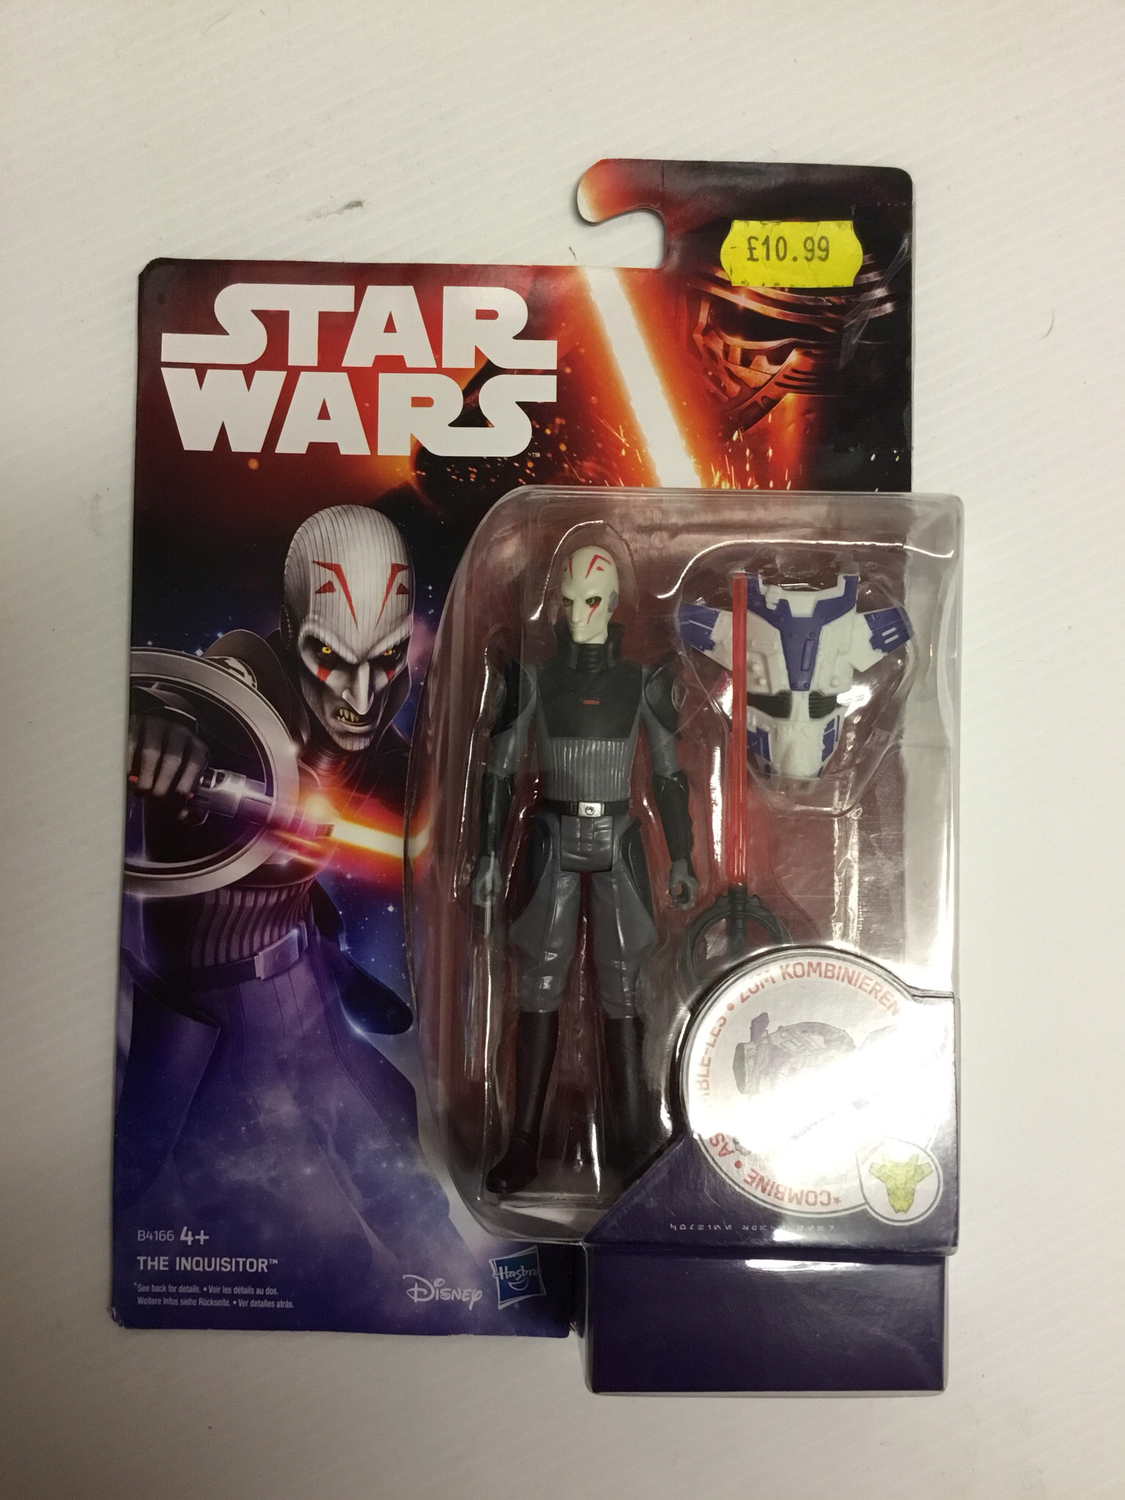 The inquisitor Star Wars figure